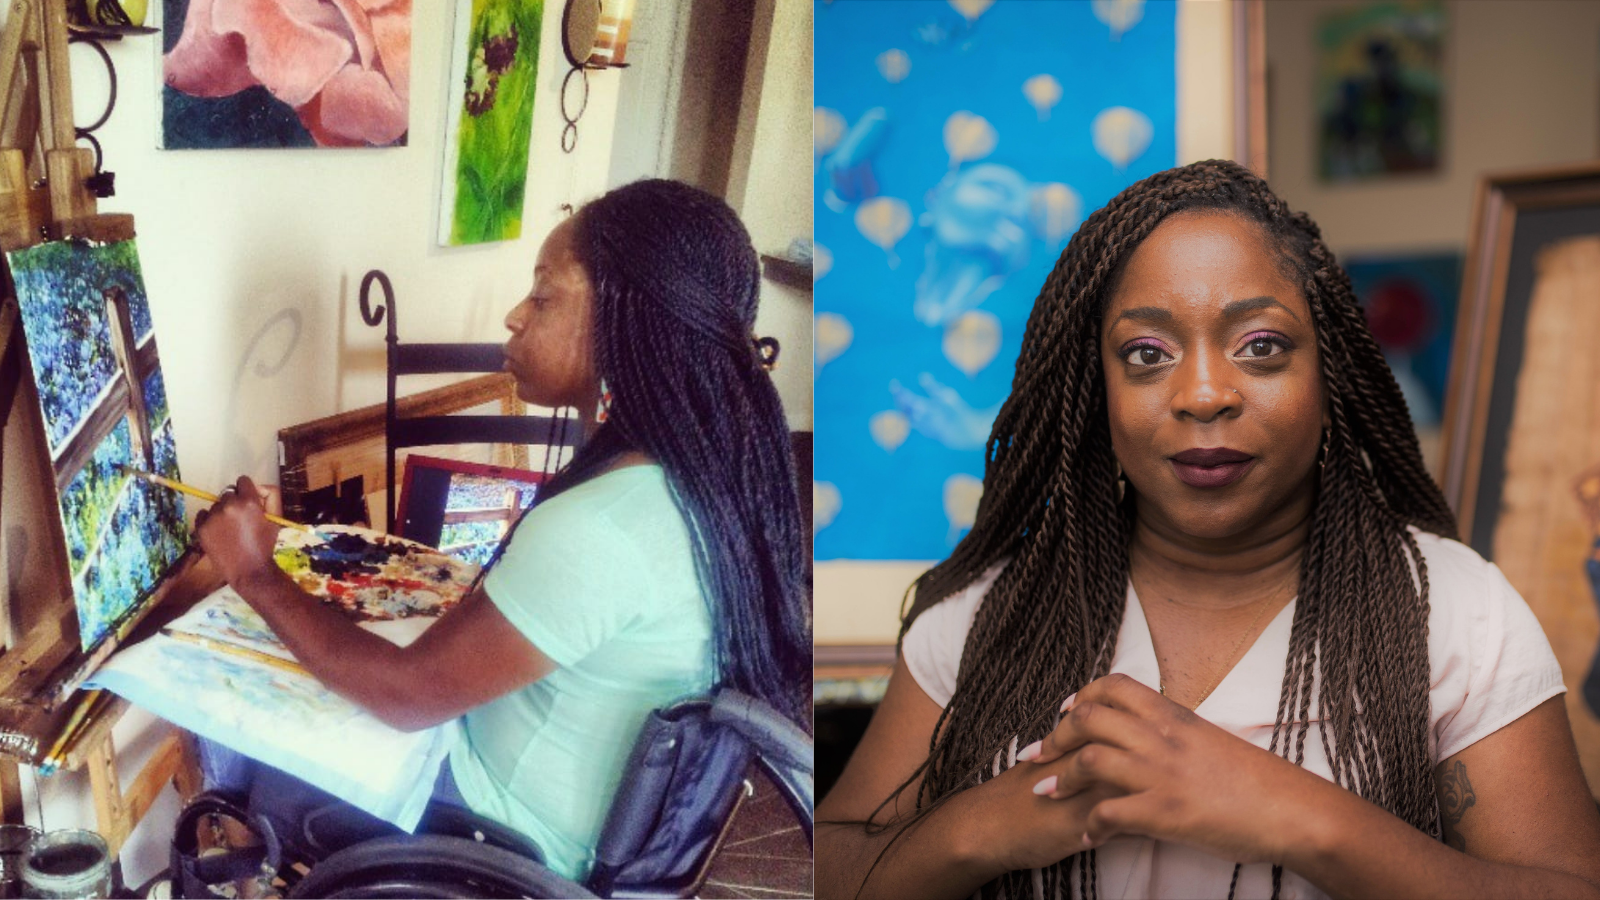 [left] Photo of Kemi Yemi-Ese, a young Nigerian American Black woman with long black braids. Kemi is painting at her easel while sitting in her manual wheelchair. The canvas is of a wooden fence and a field of bright blue-purple flowers. [right] Photo of Kemi Yemi-Ese, a young Nigerian American Black woman with long black braids. She is wearing a white short-sleeved shirt and her hands are clasped in front of her. Behind her are two canvases featuring her paintings, the one on the left is light blue painting with abstract shapes and the one on the right is a painting of an elder Black man